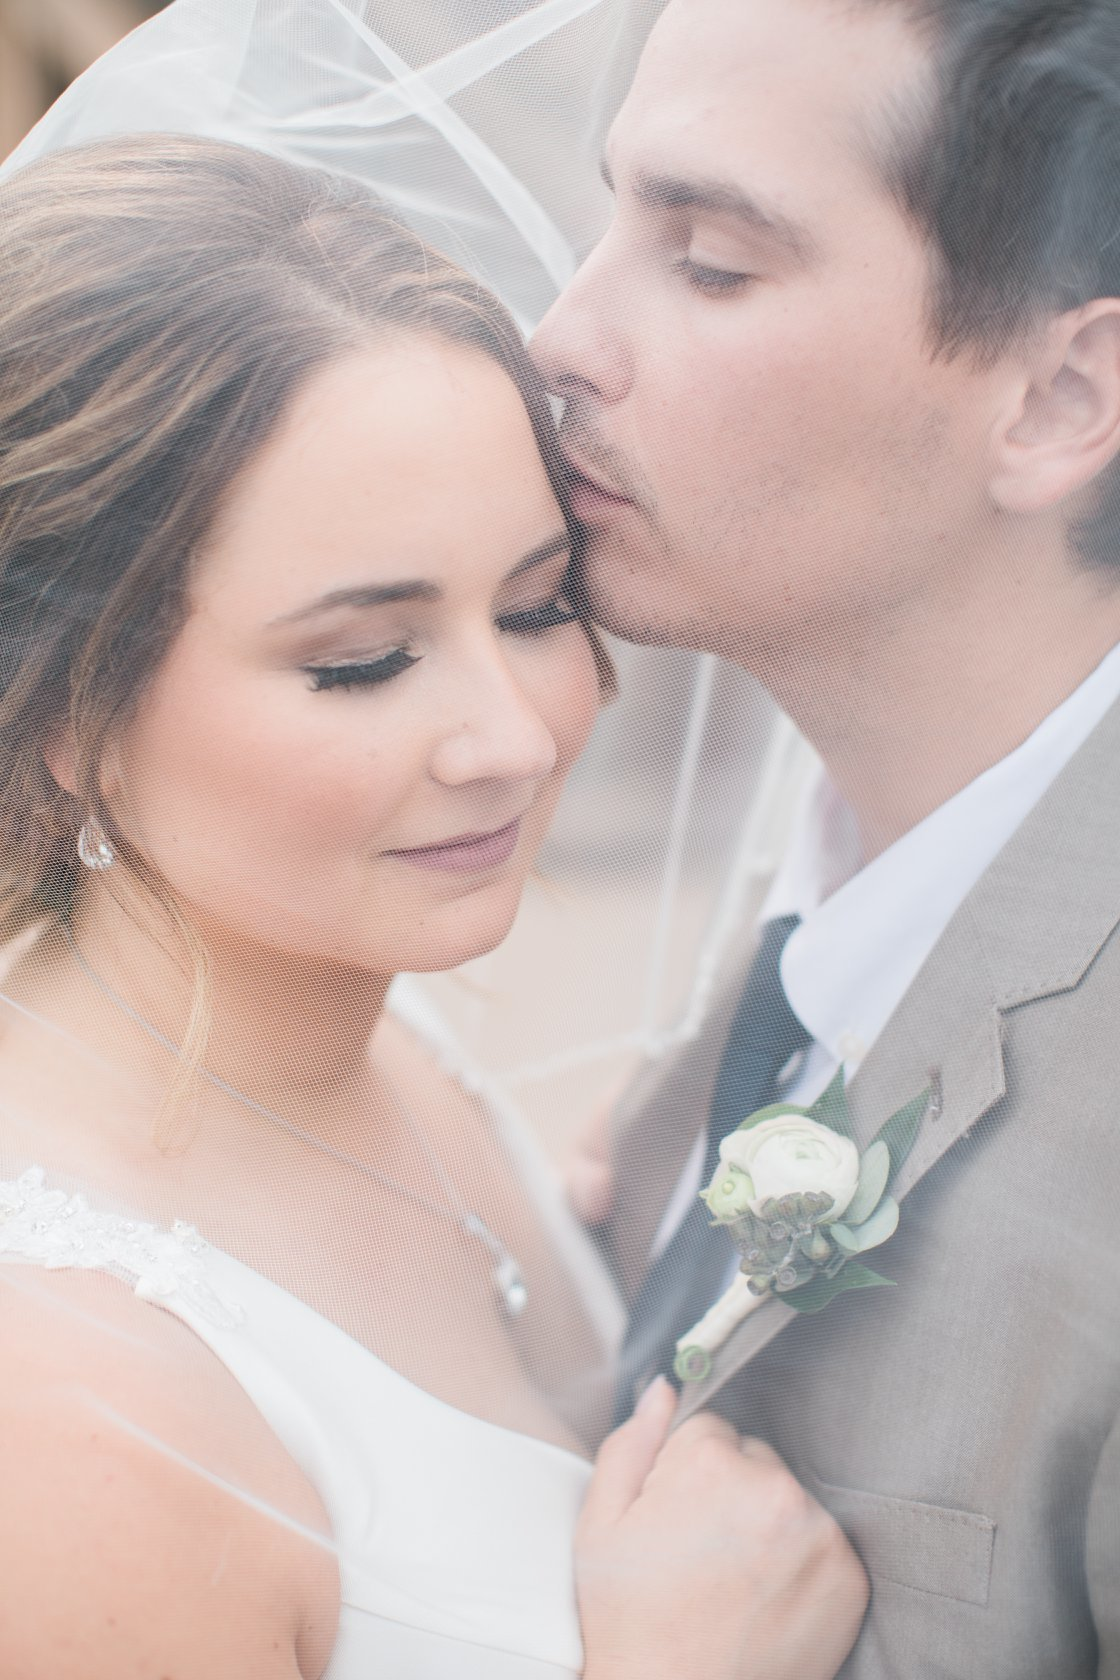 Wedding Photographer, groom kissing bride's forehead under veil